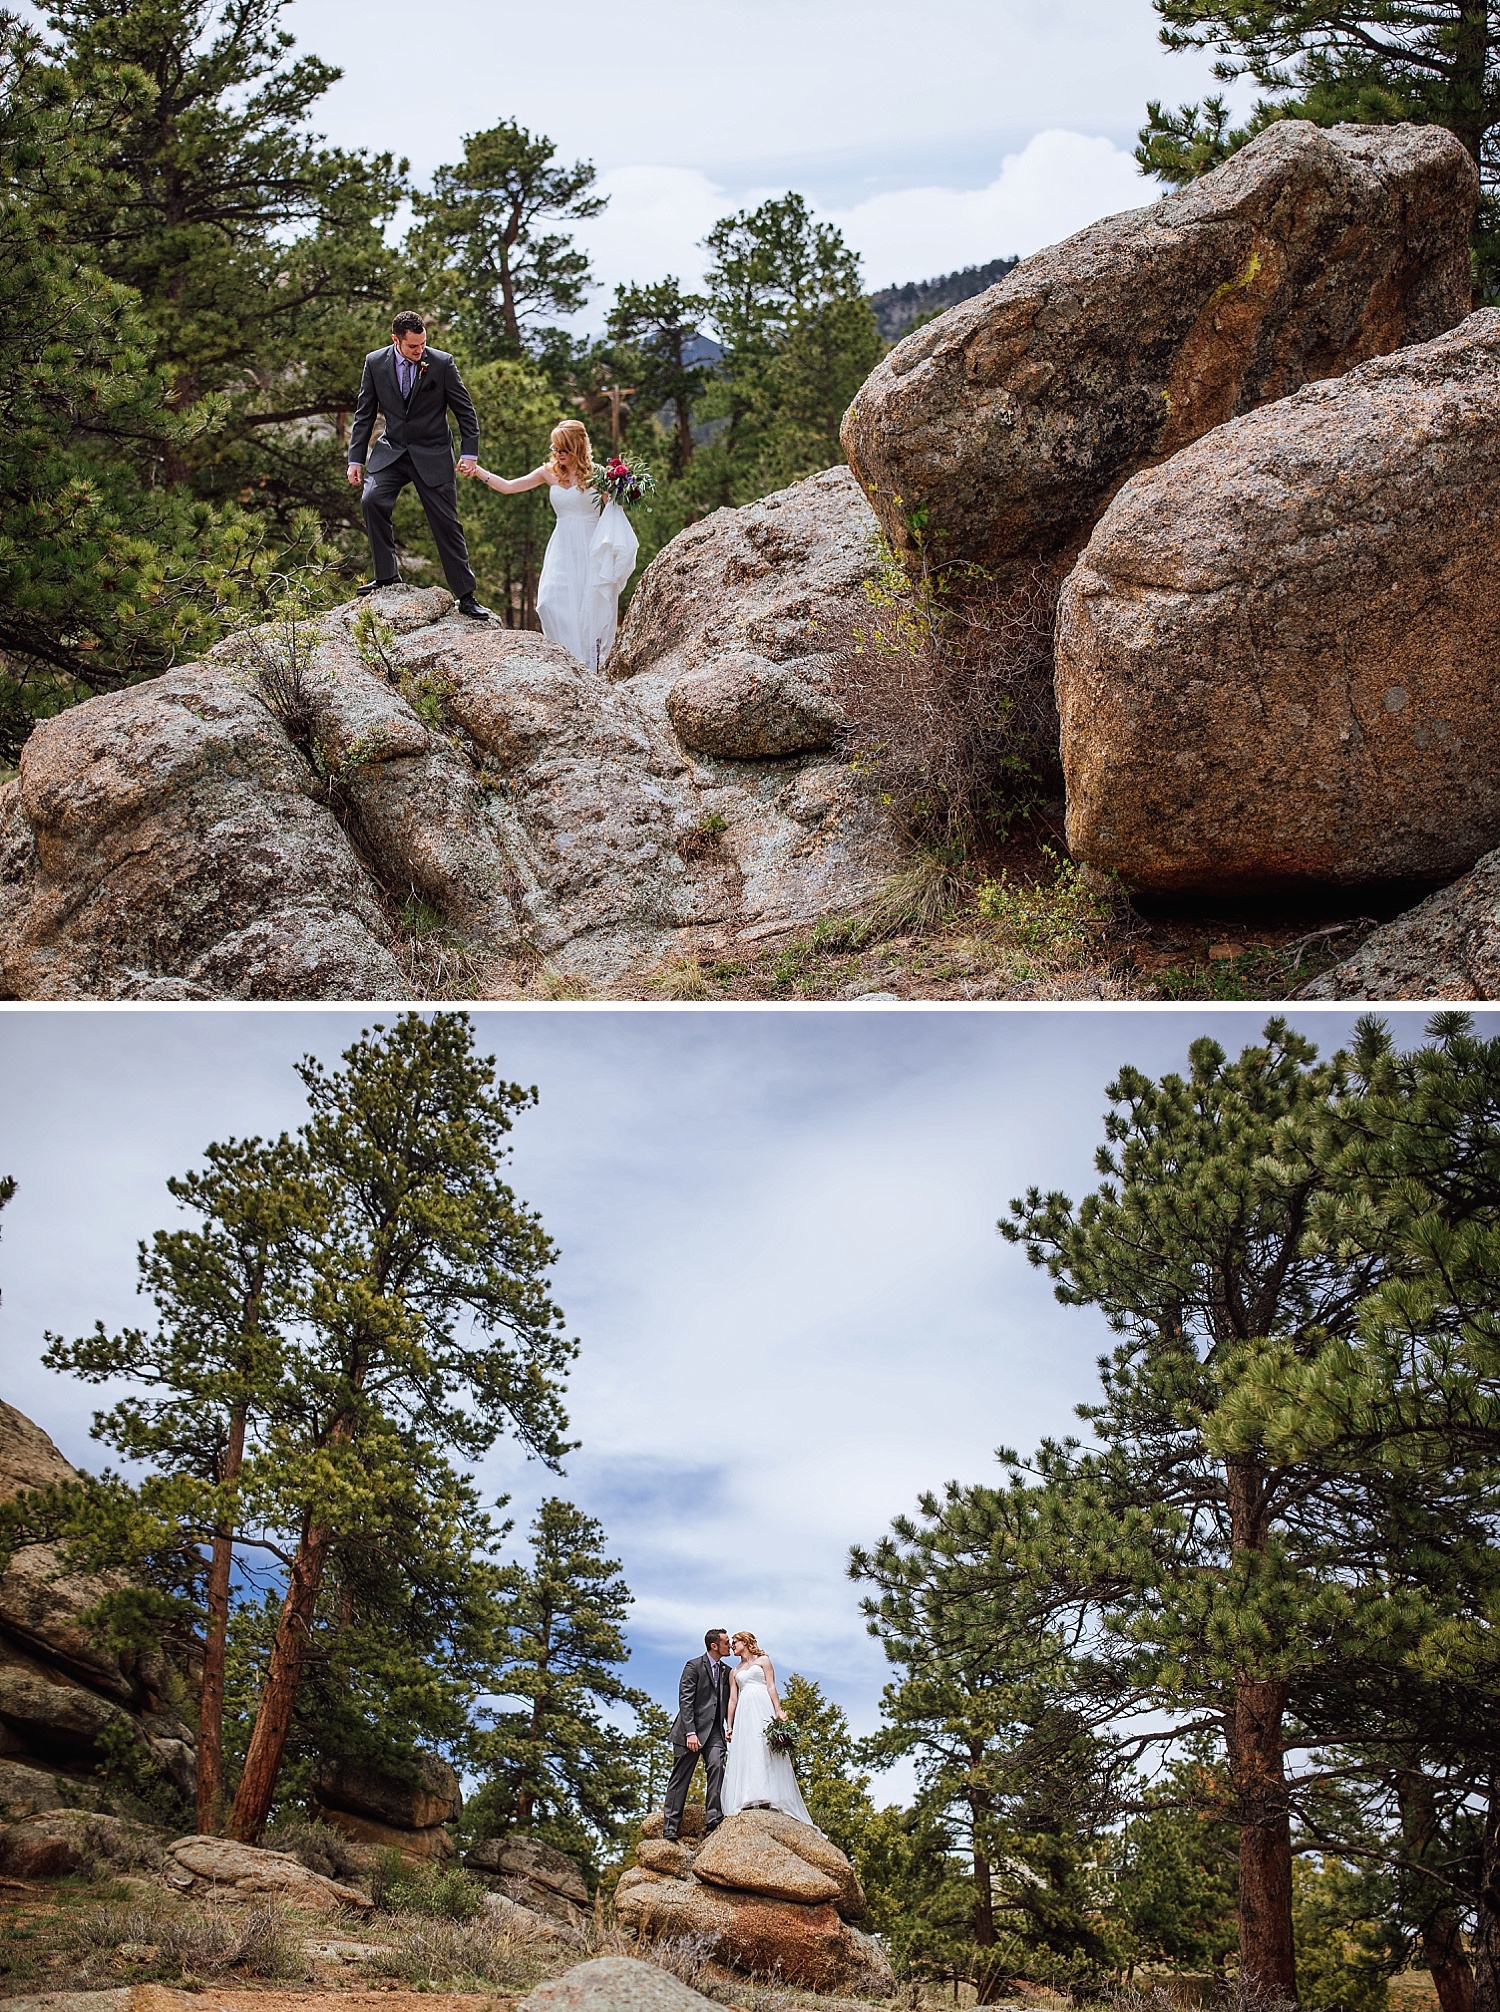 A mountain wedding would be so perfect! Hiking and climbing on top of some big boulders would make for some really cool wedding photos!! Photo by Maddie Mae Photography